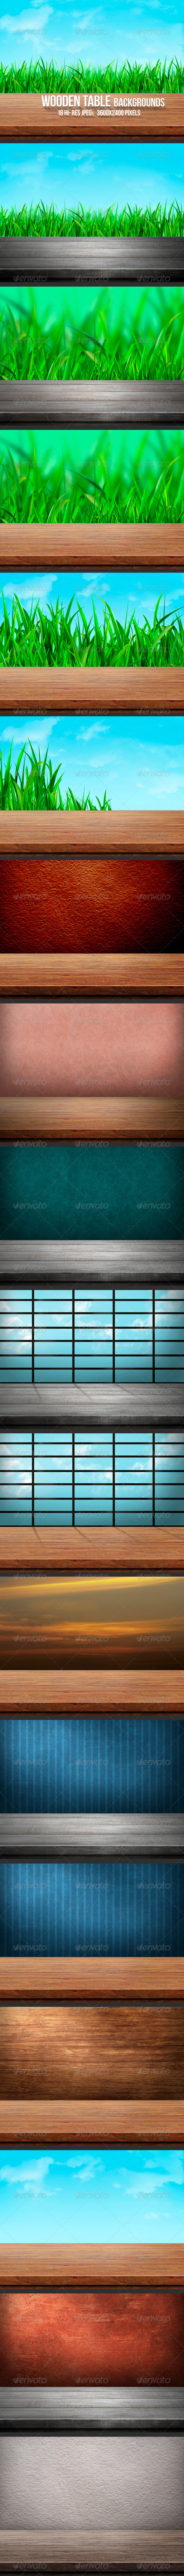 GraphicRiver Wooden Table Backgrounds 5717657